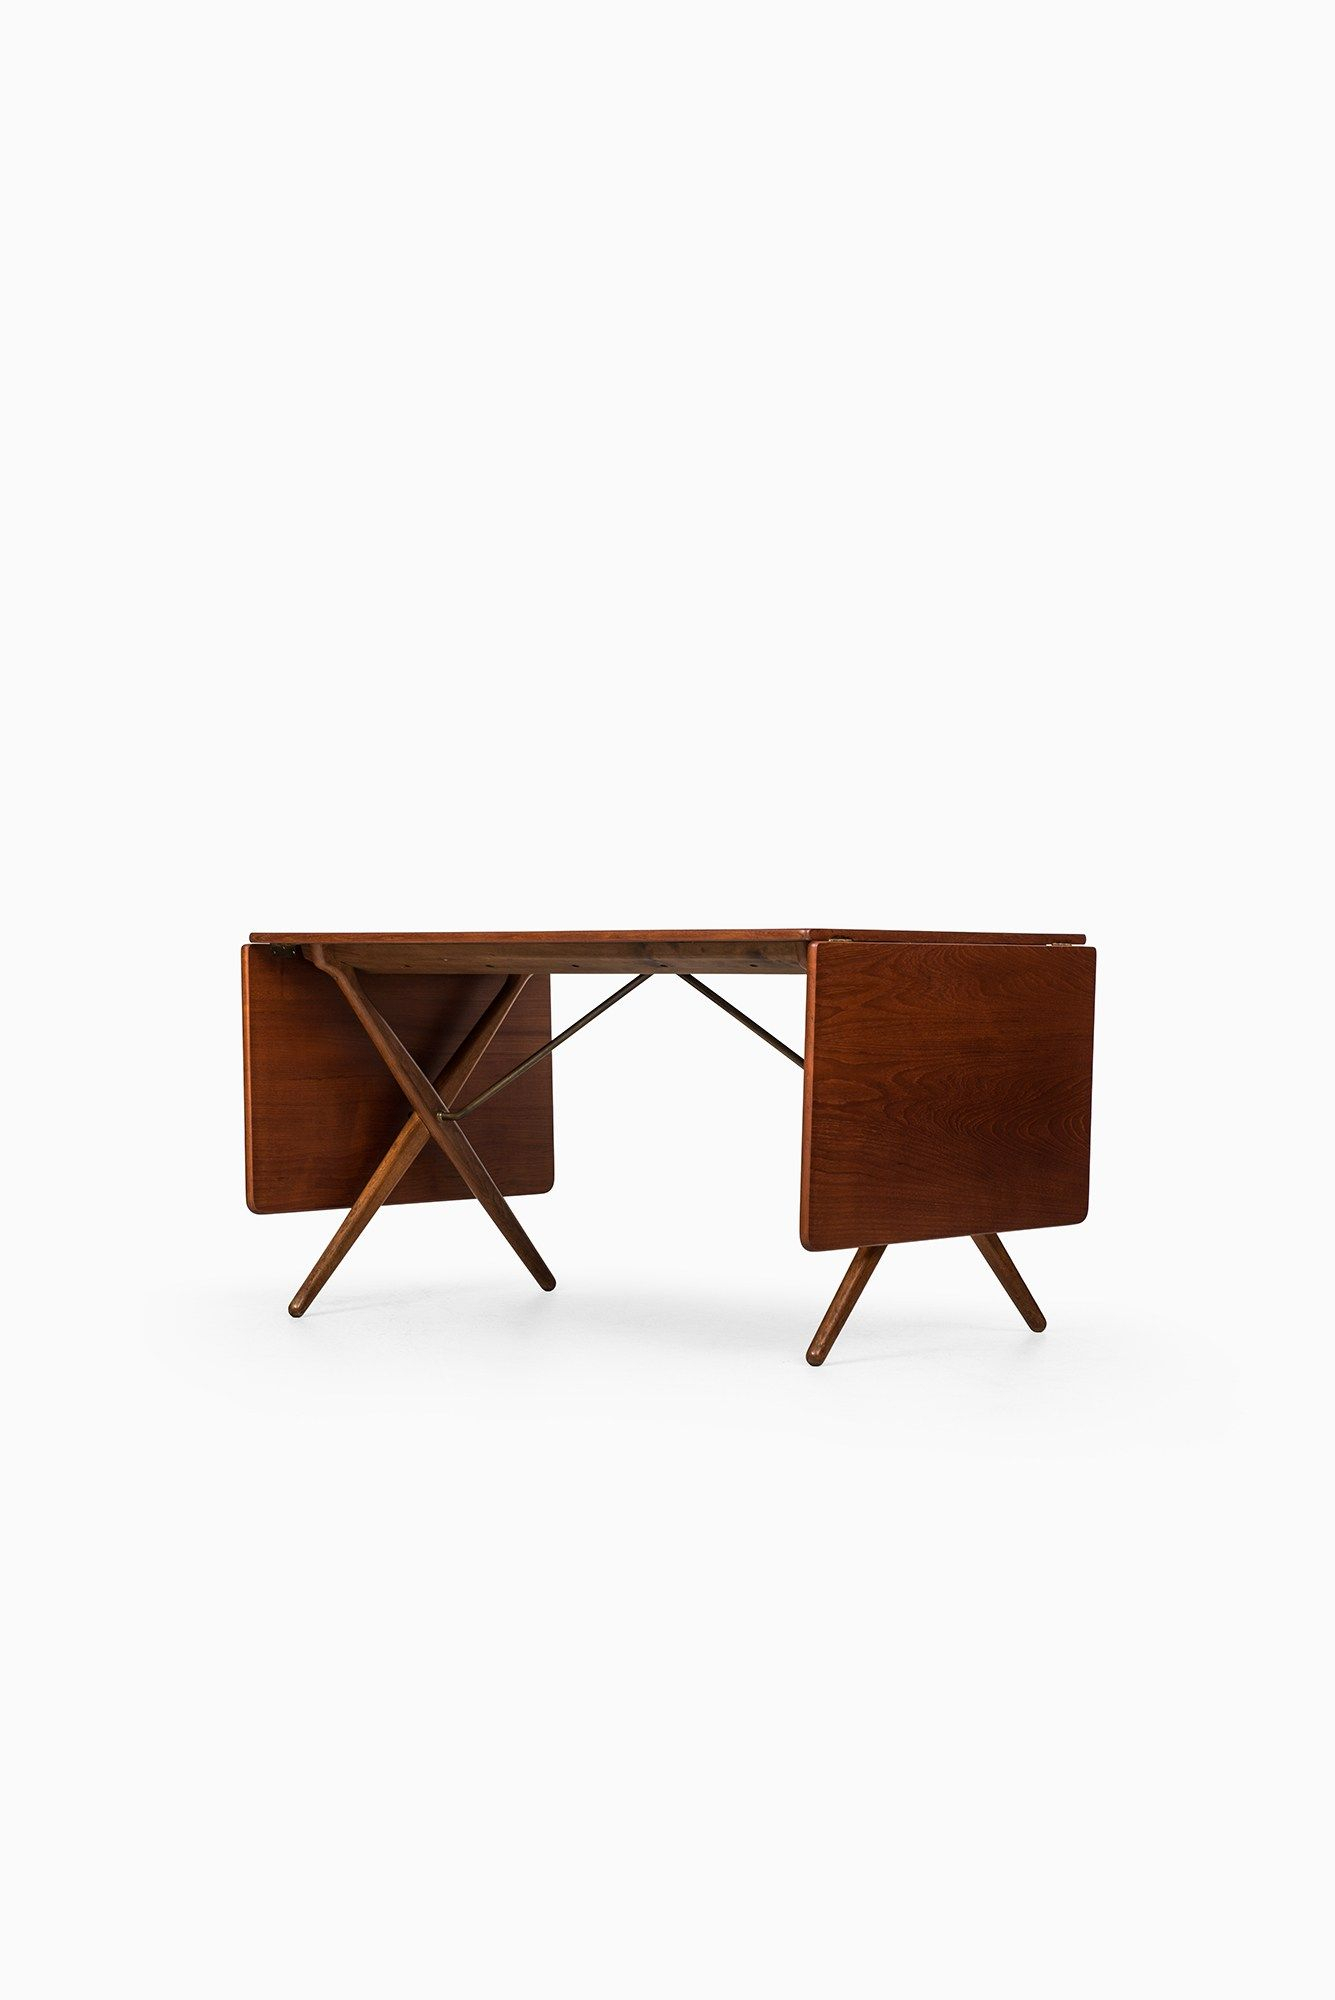 Hans Wegner Dining Table | Dining Table, Hans Wegner With Regard To Most Recent Clennell  (View 15 of 15)